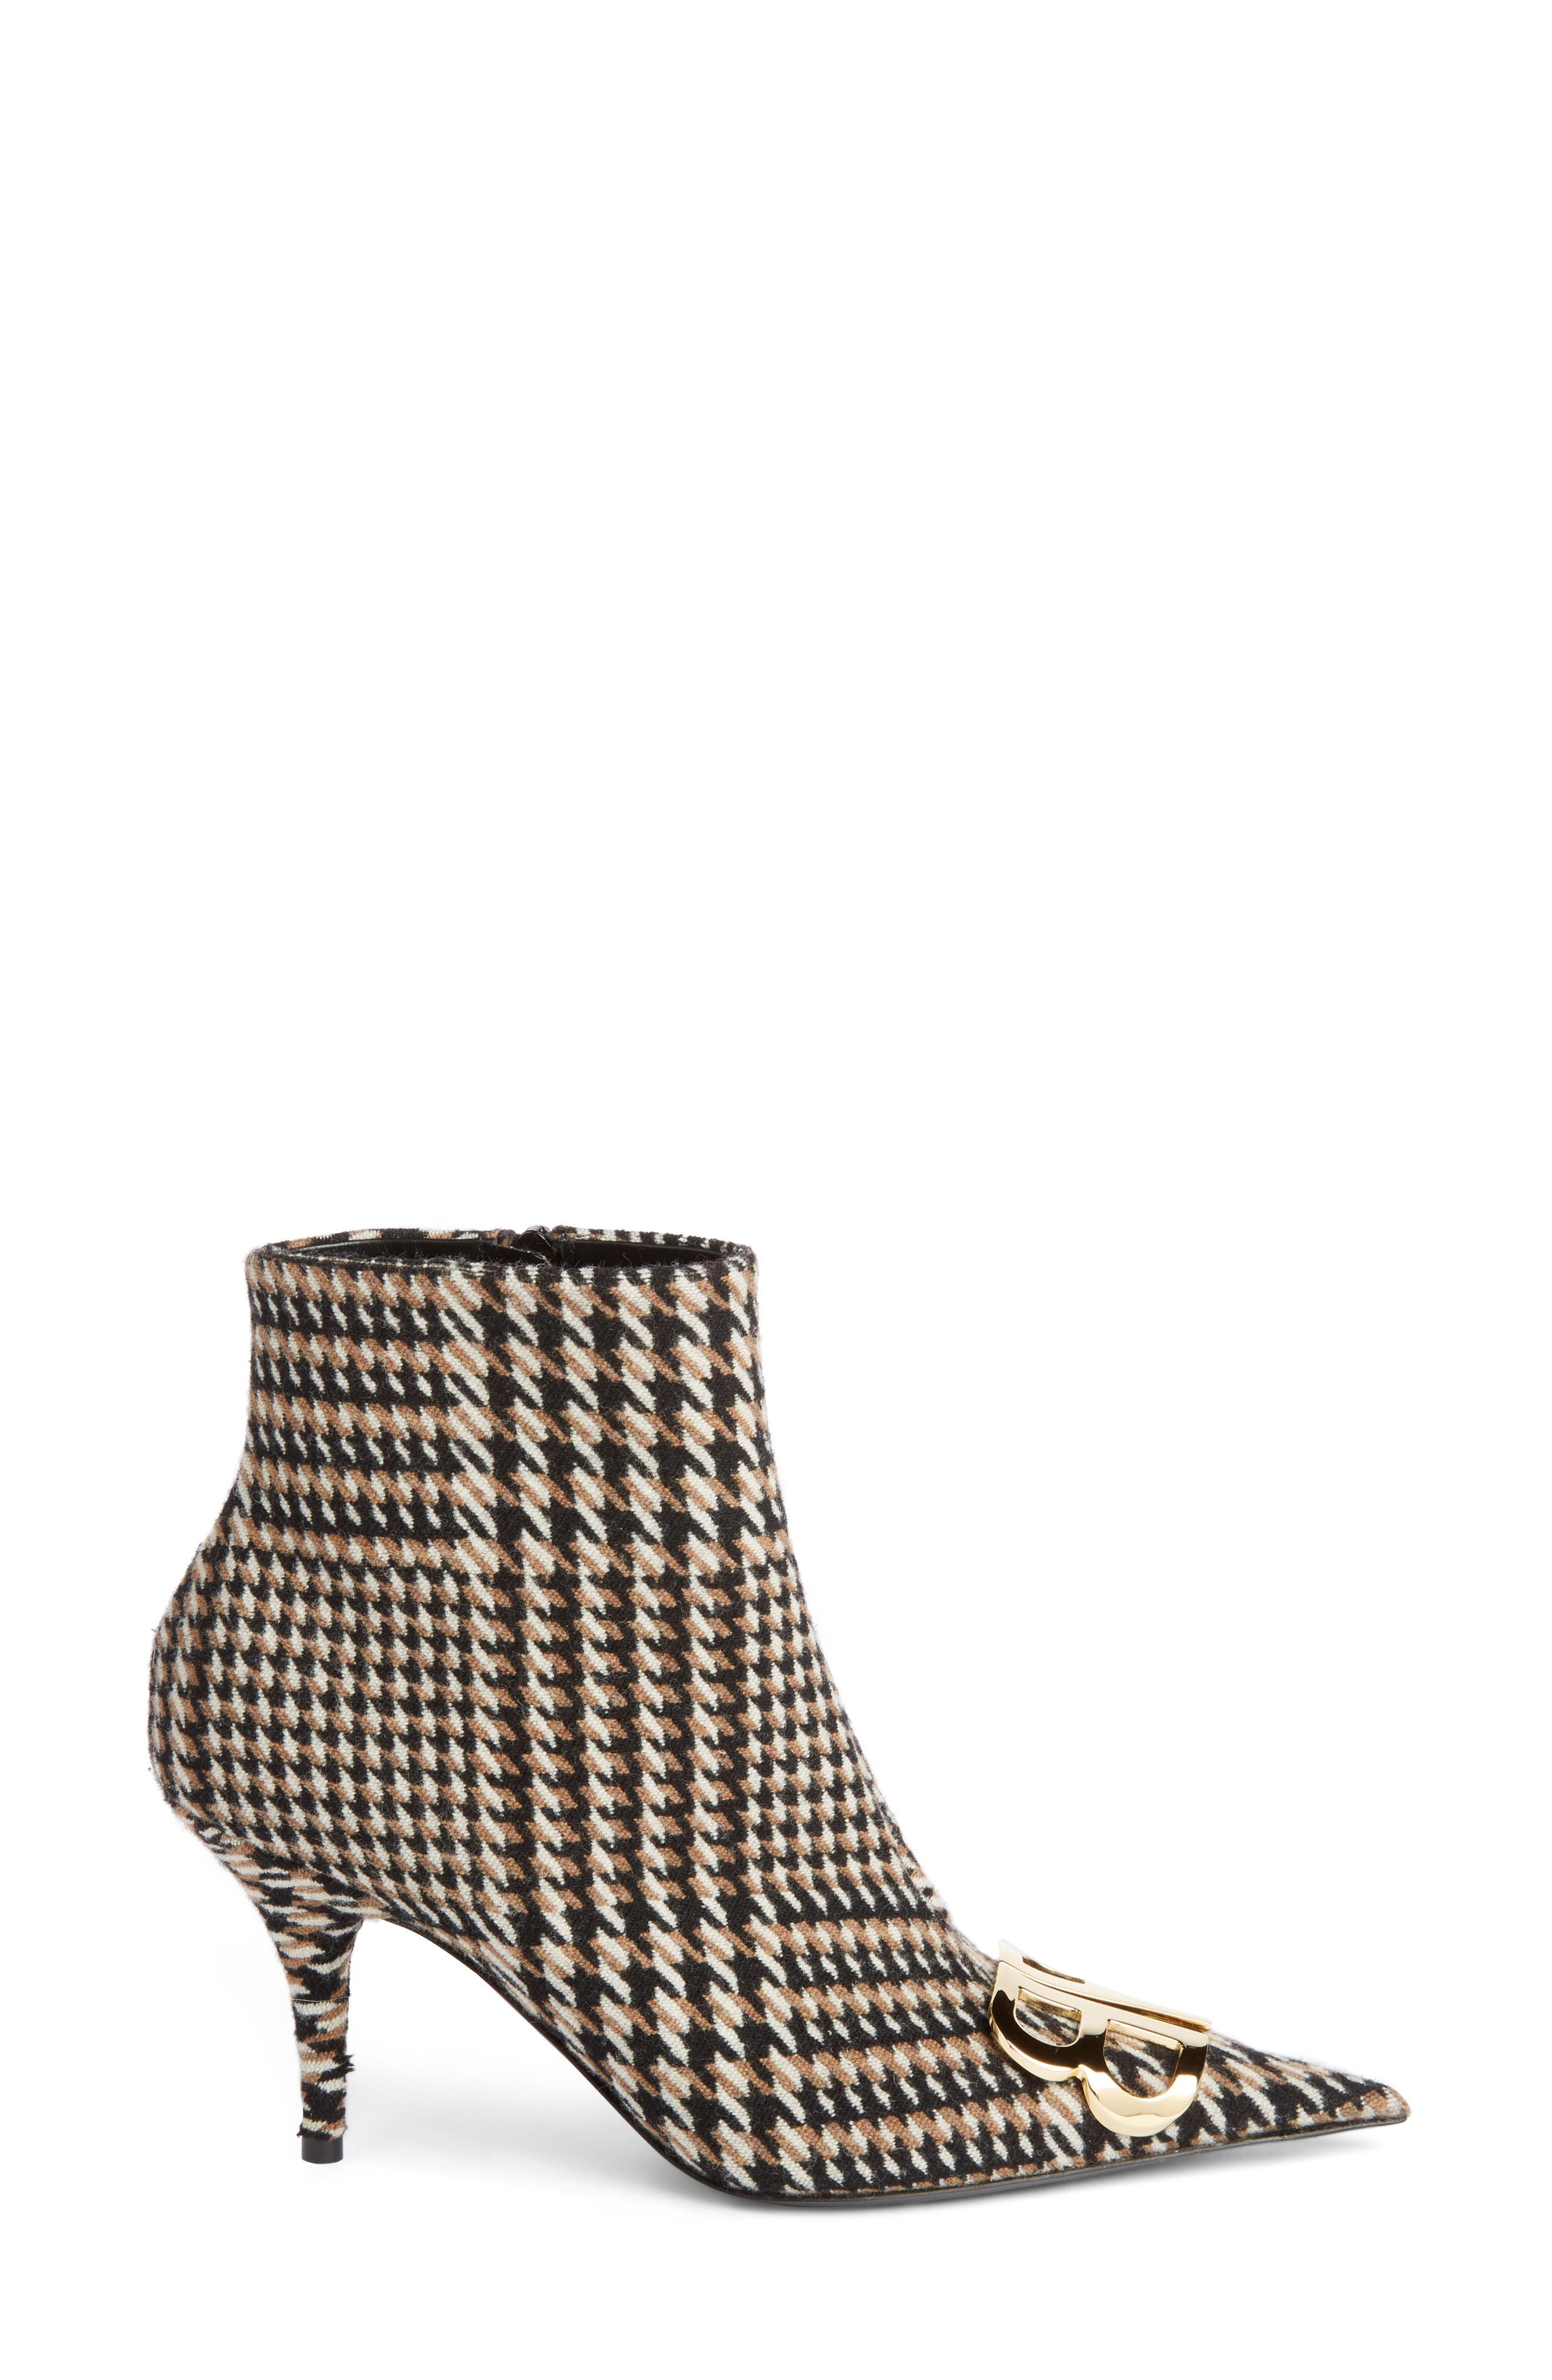 BB Pointy Toe Bootie,                             Alternate thumbnail 3, color,                             BLACK/ WHITE/ CAMEL